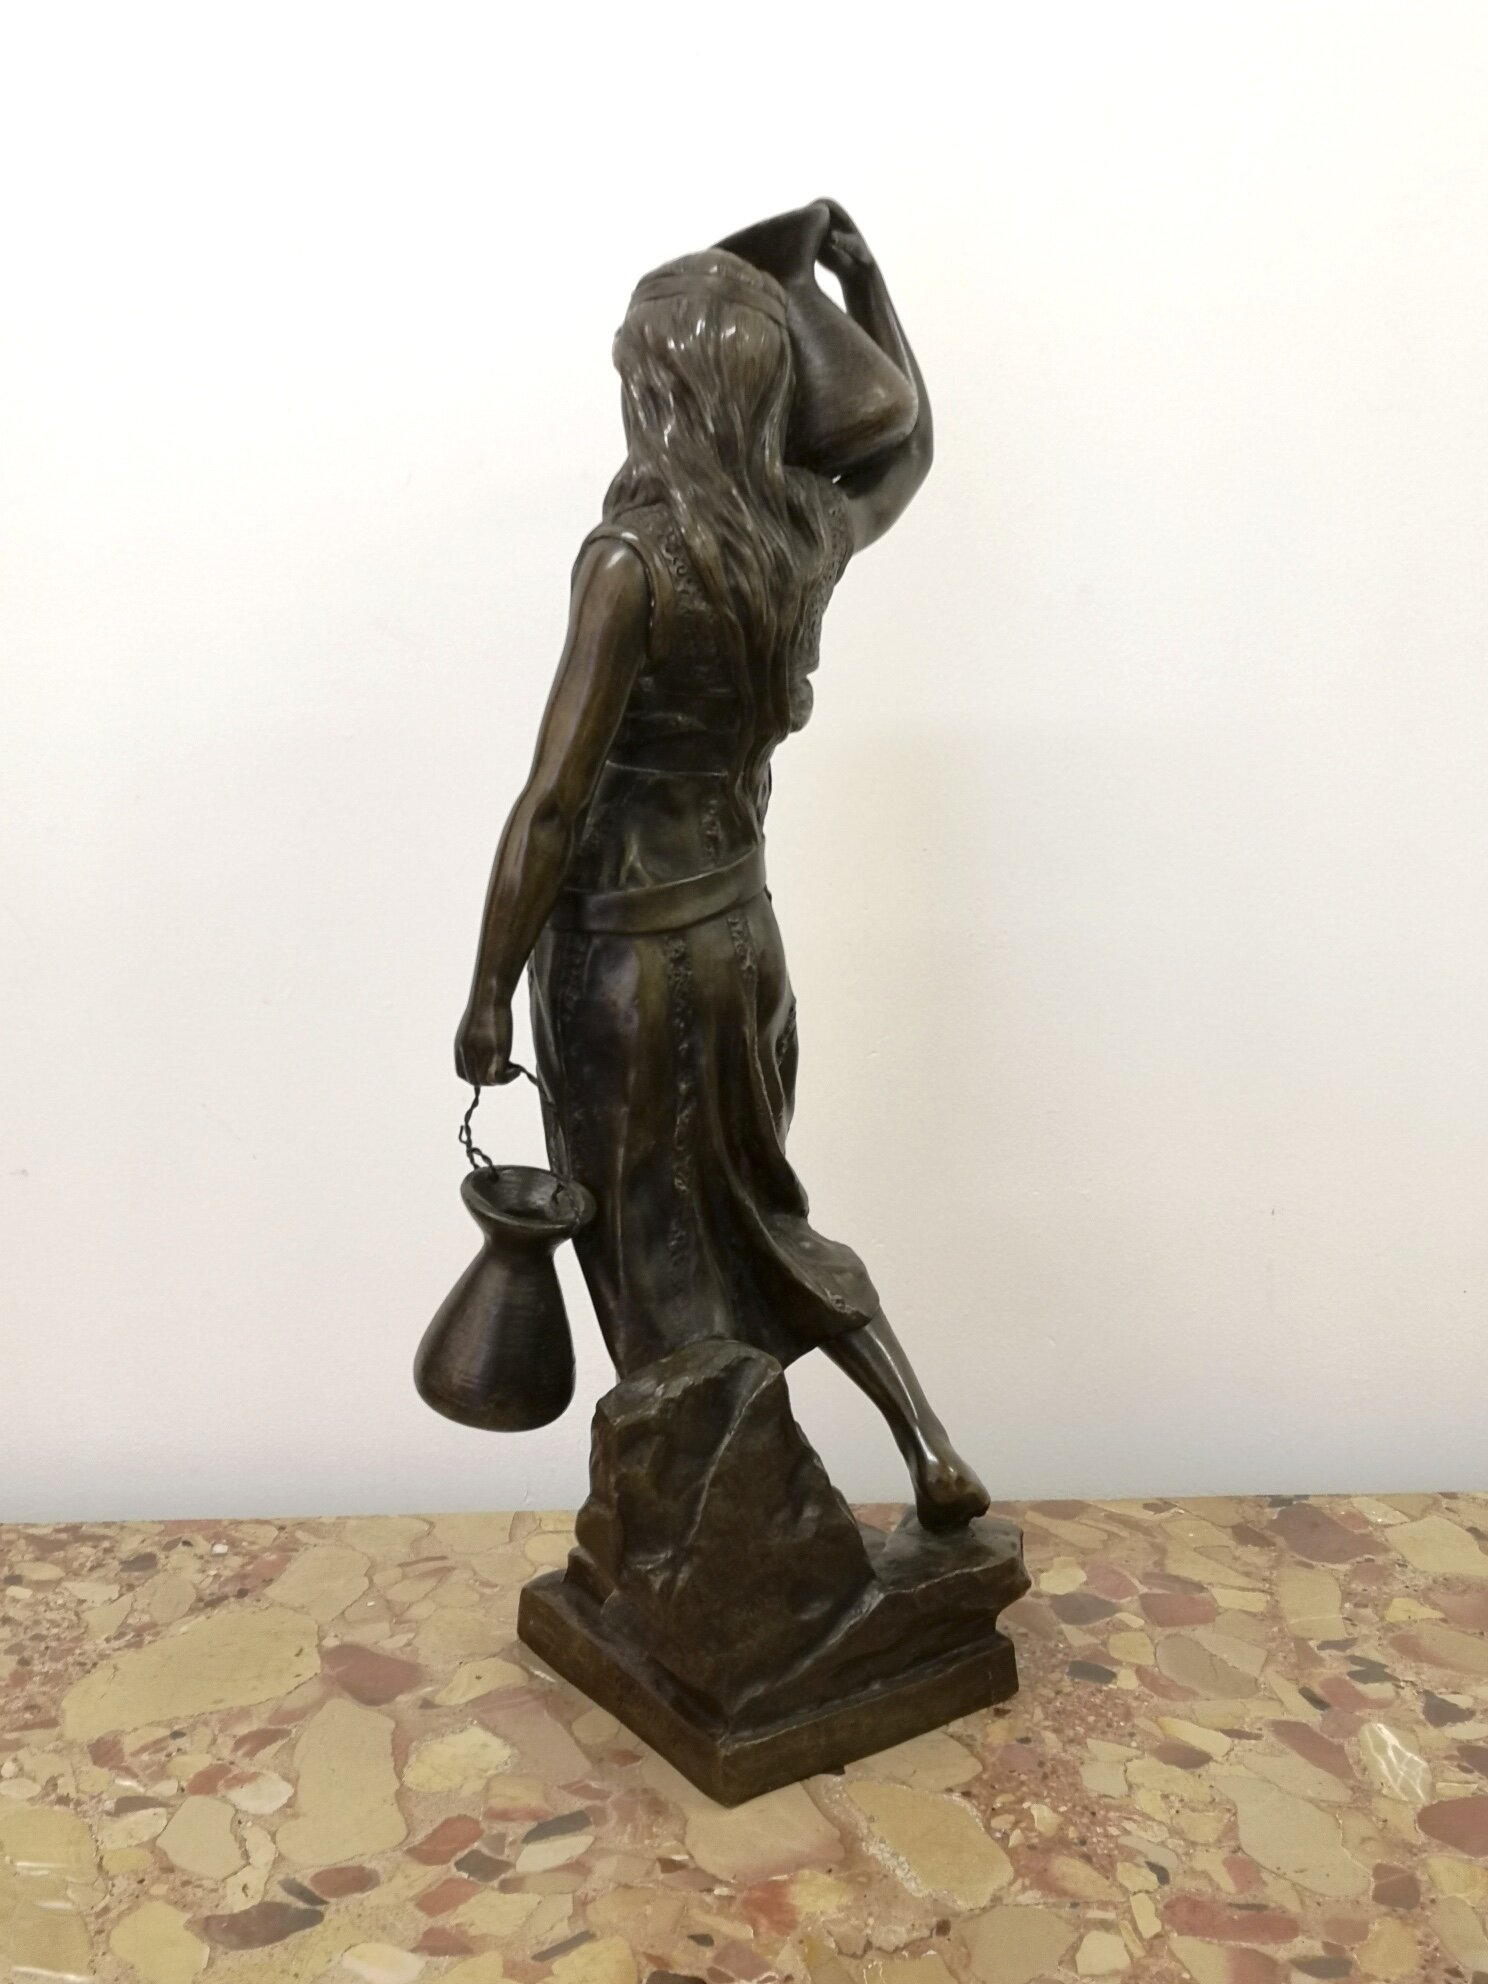 19th Century French Bronze Of An Arab Water Carrier By George Coudray